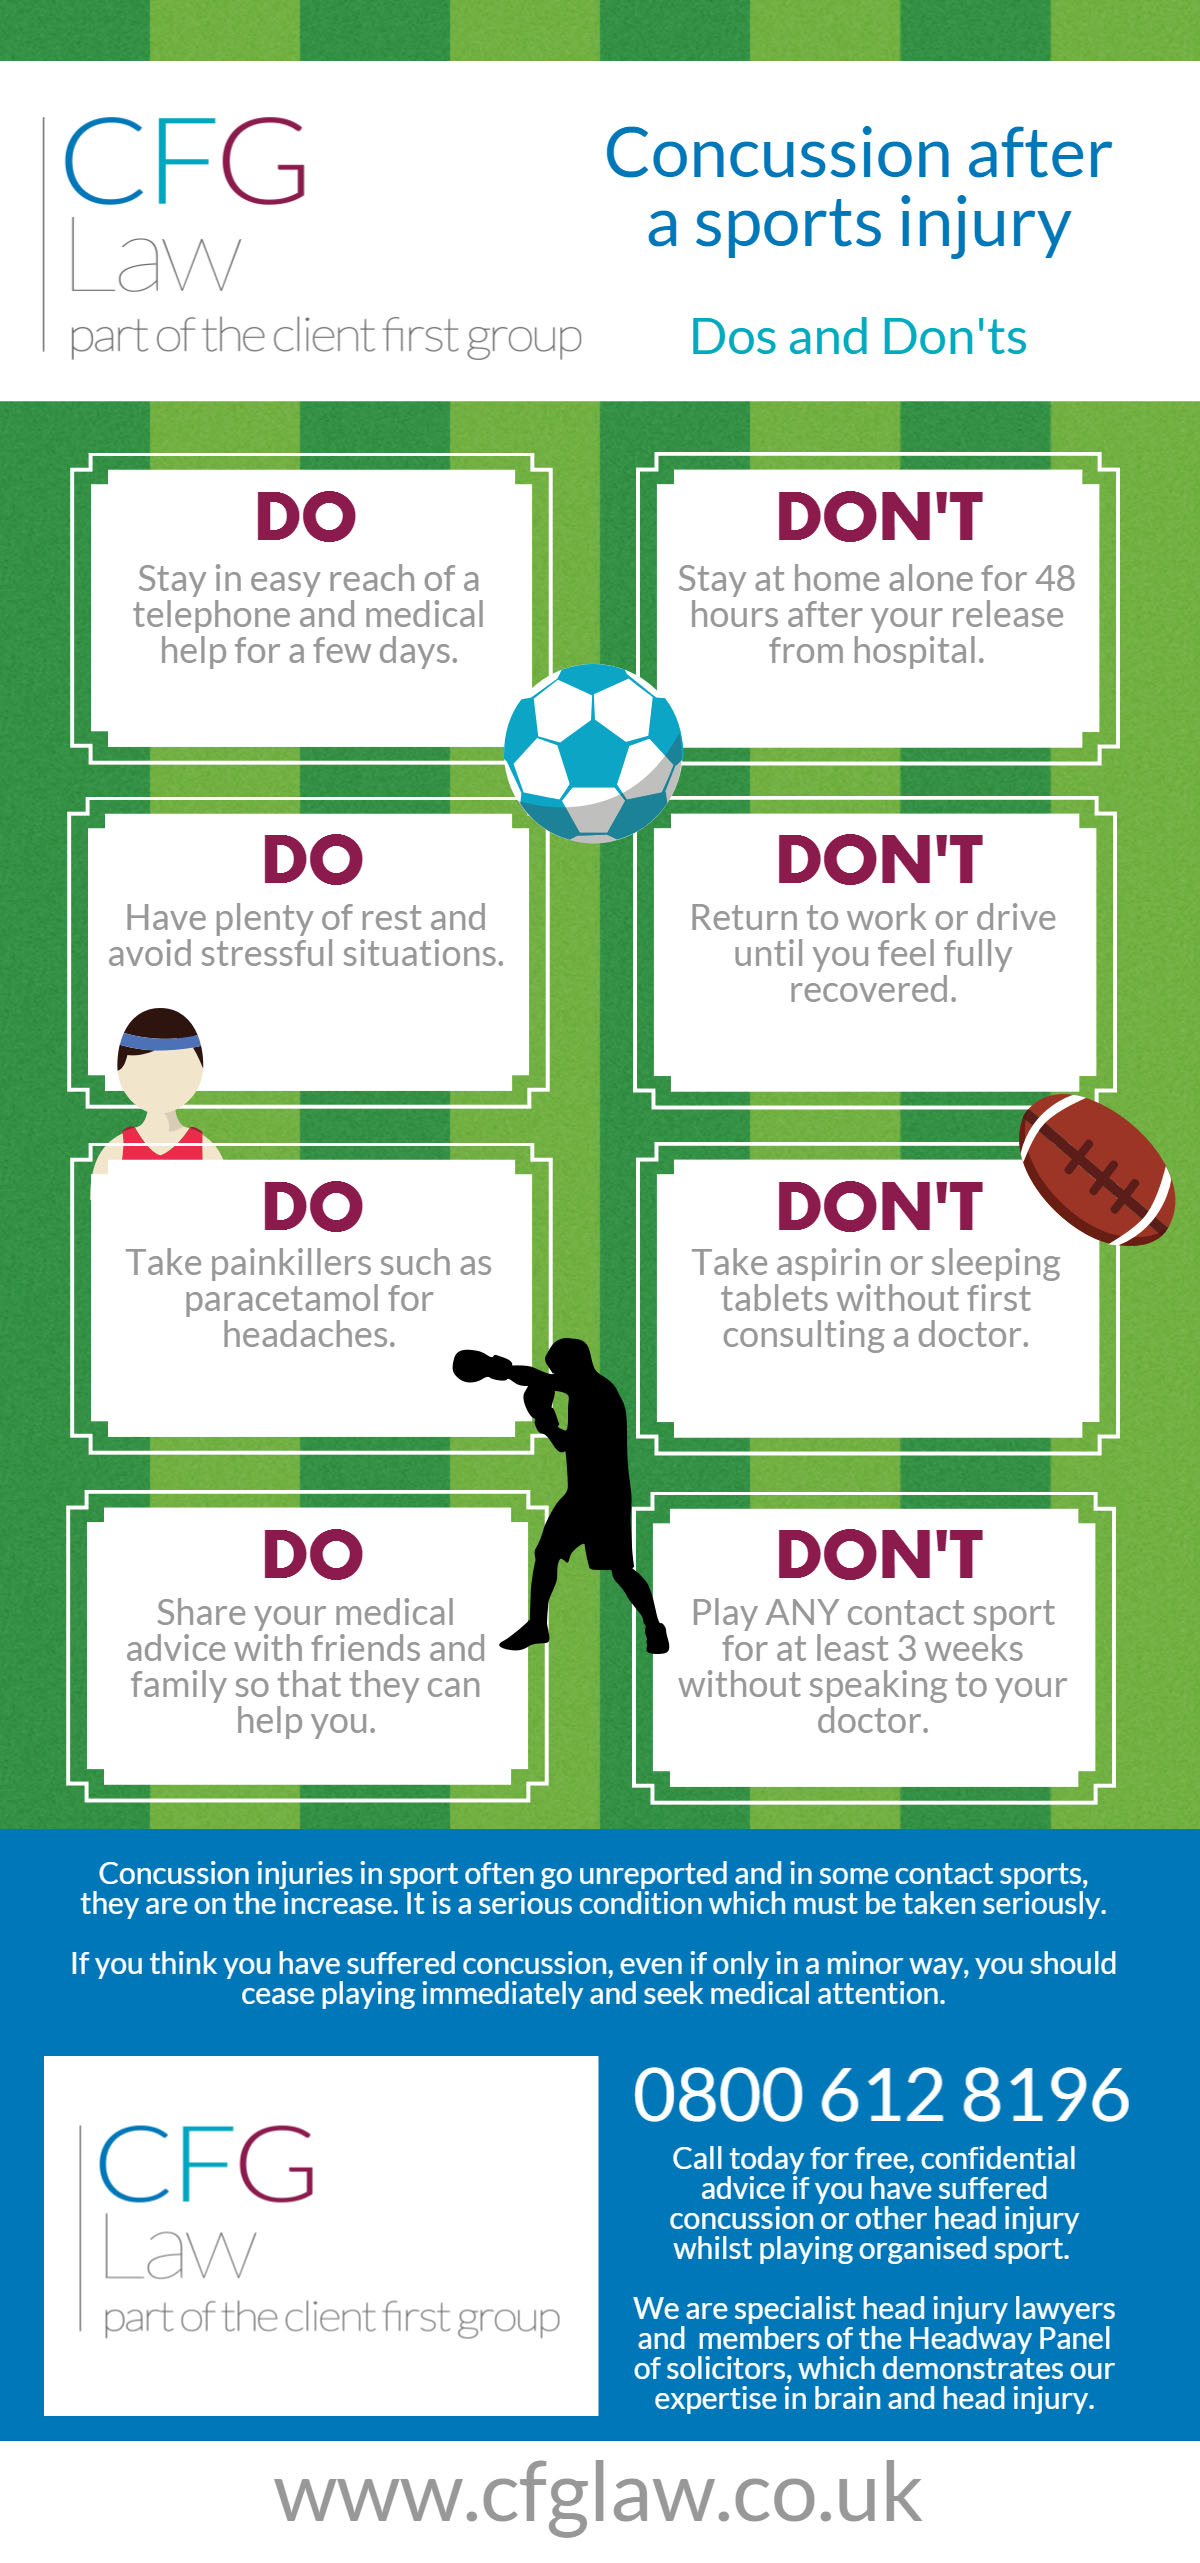 Infographic: The dos and don'ts following a suspected sport concussion